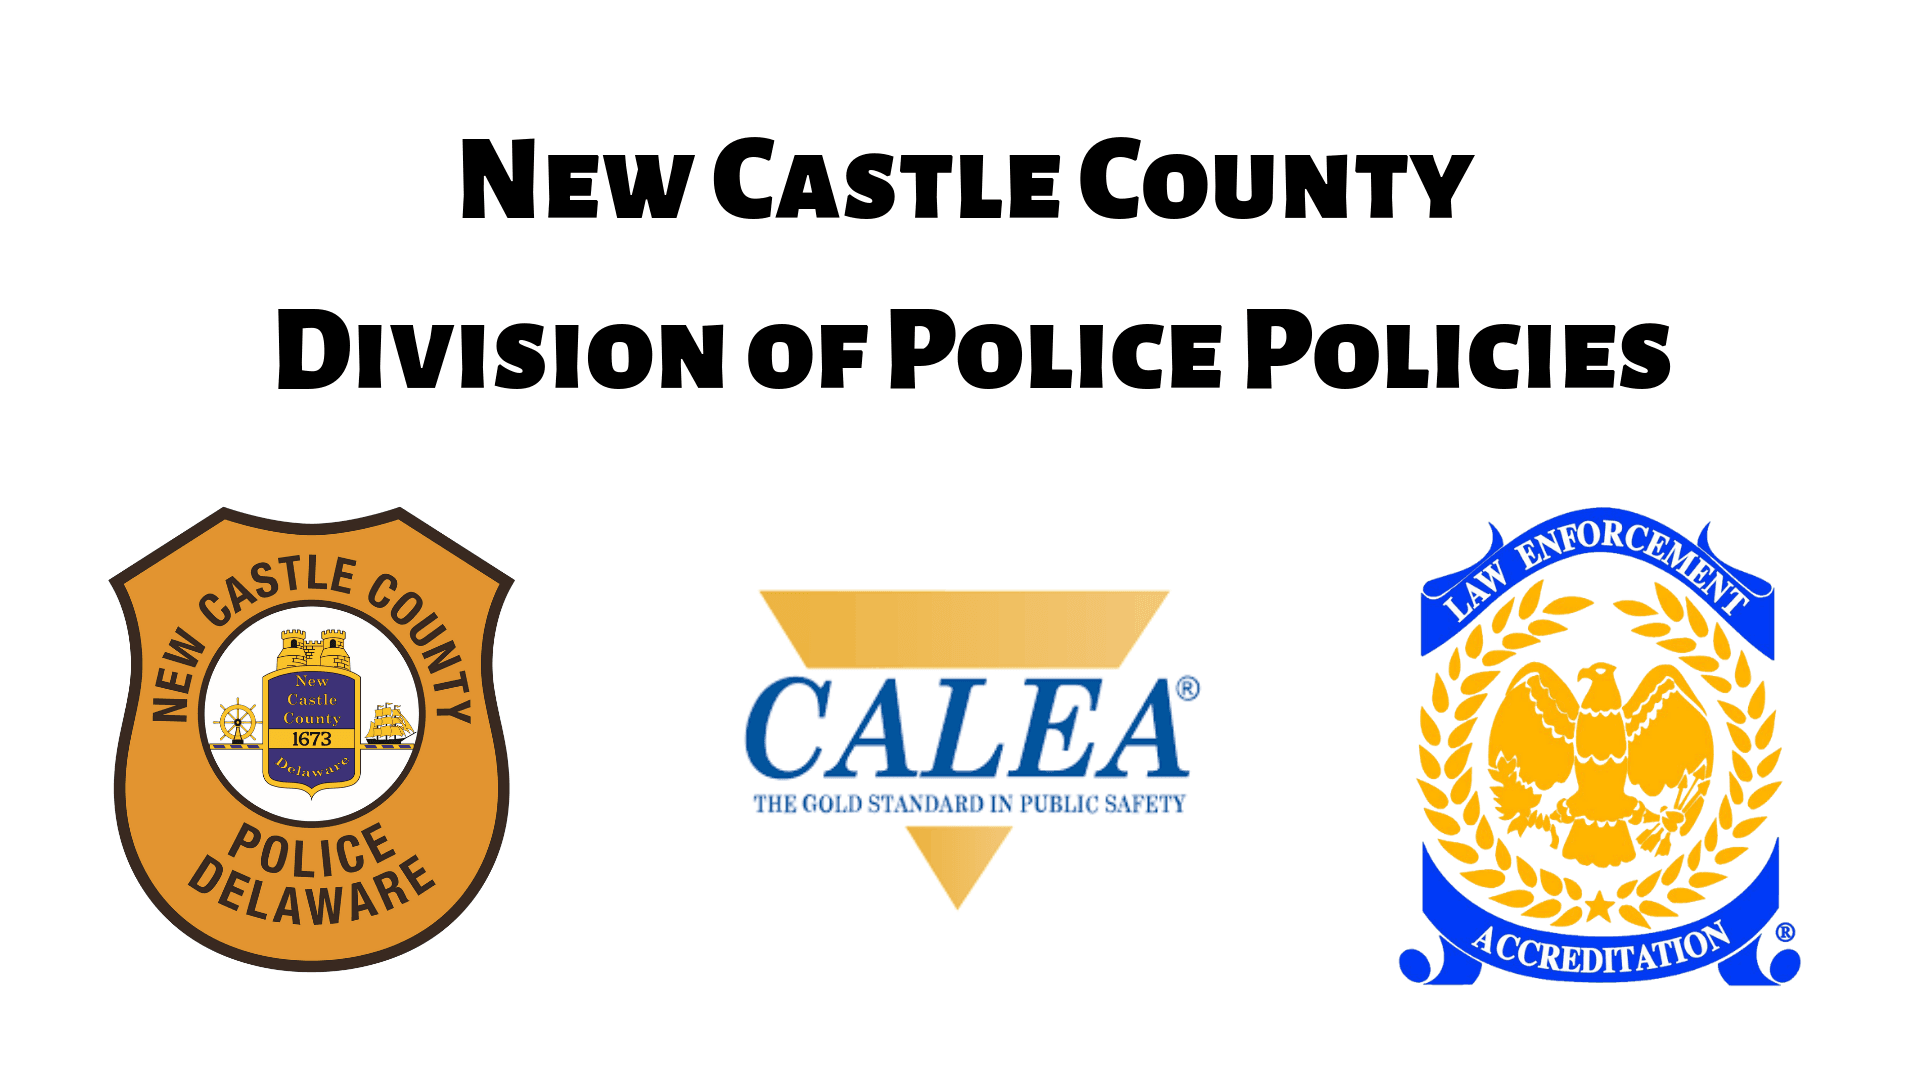 New Castle County Division of Police Policies